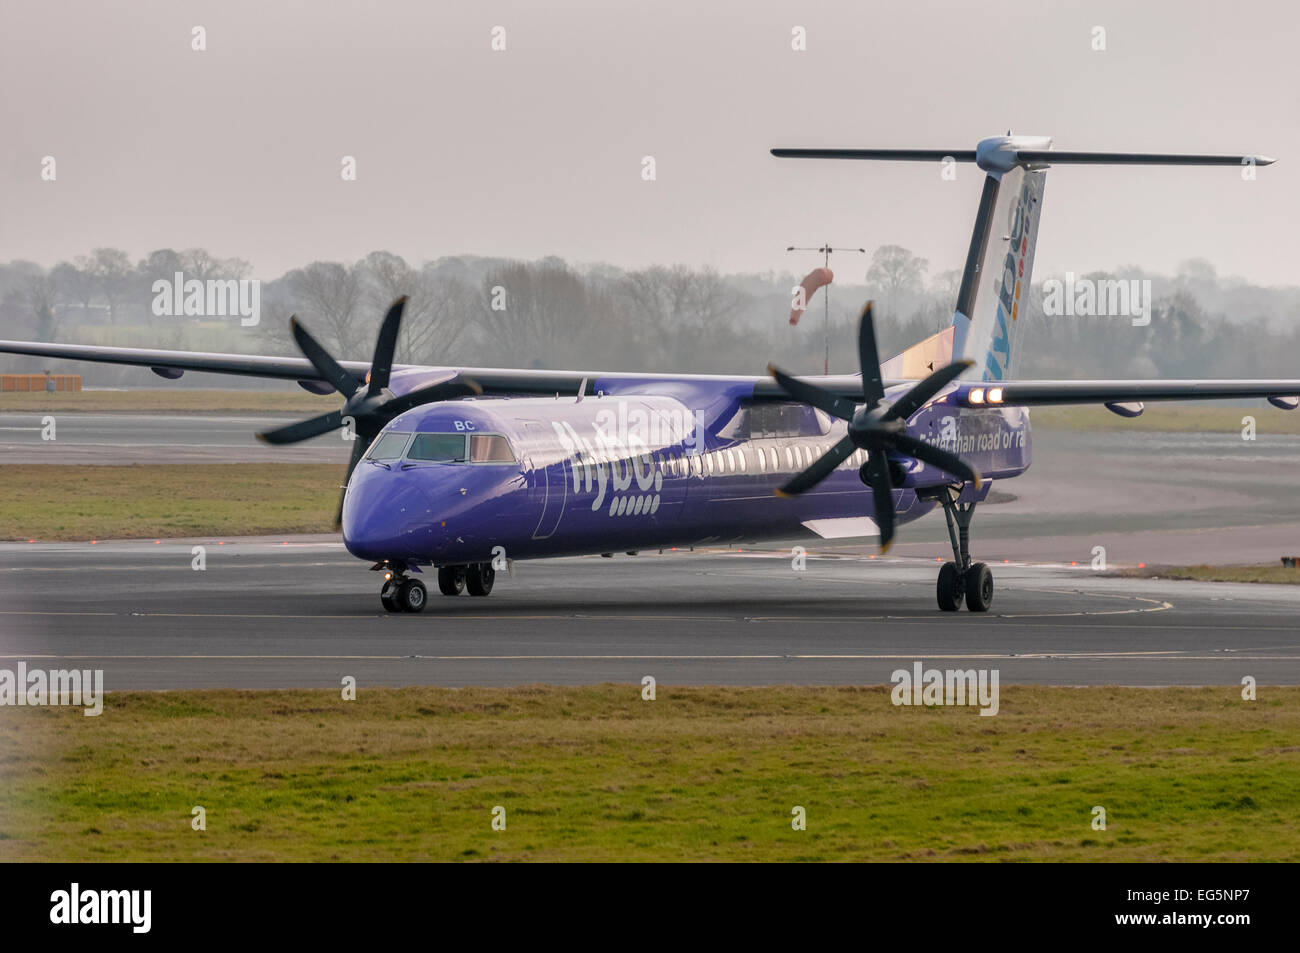 FlyBe Bombardier DHC-8-402 Q400 turbo prop. - Stock Image